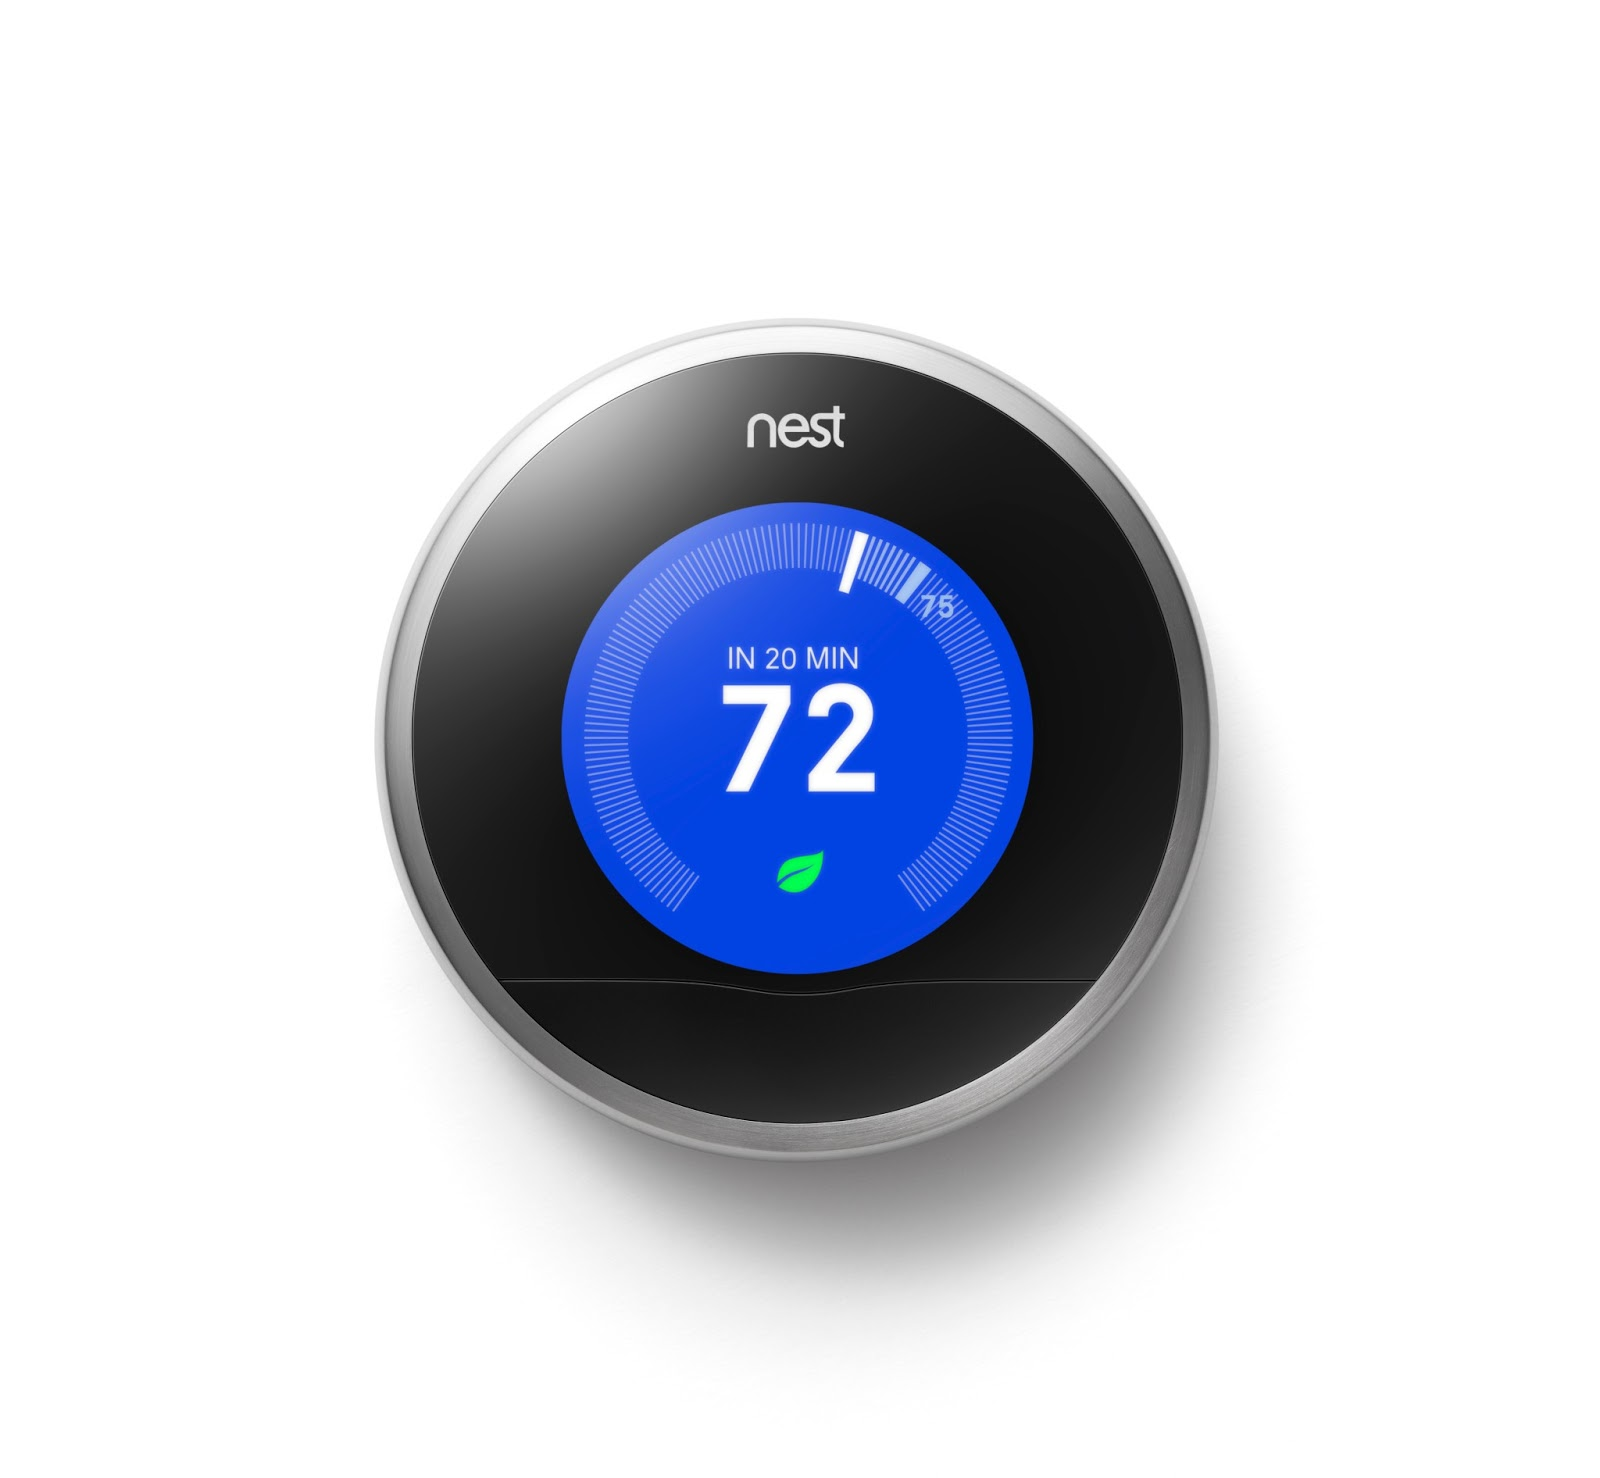 Eco tech planet review nest learning thermostat 2nd generation - Nest thermostat stylish home temperature control ...